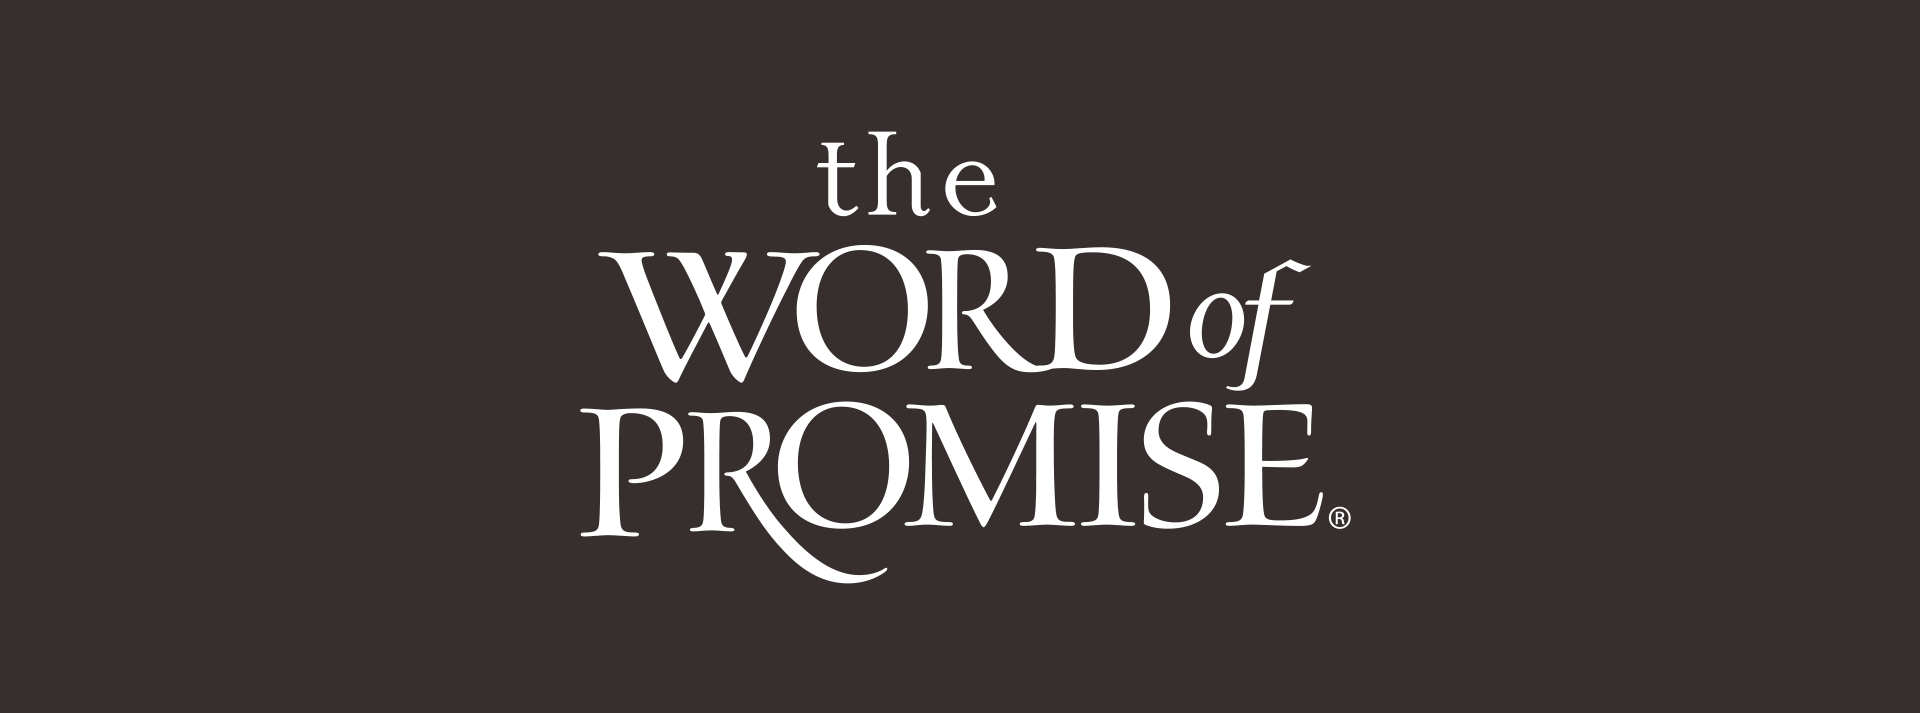 The Promises of God - Lesson 5 - Bible Education